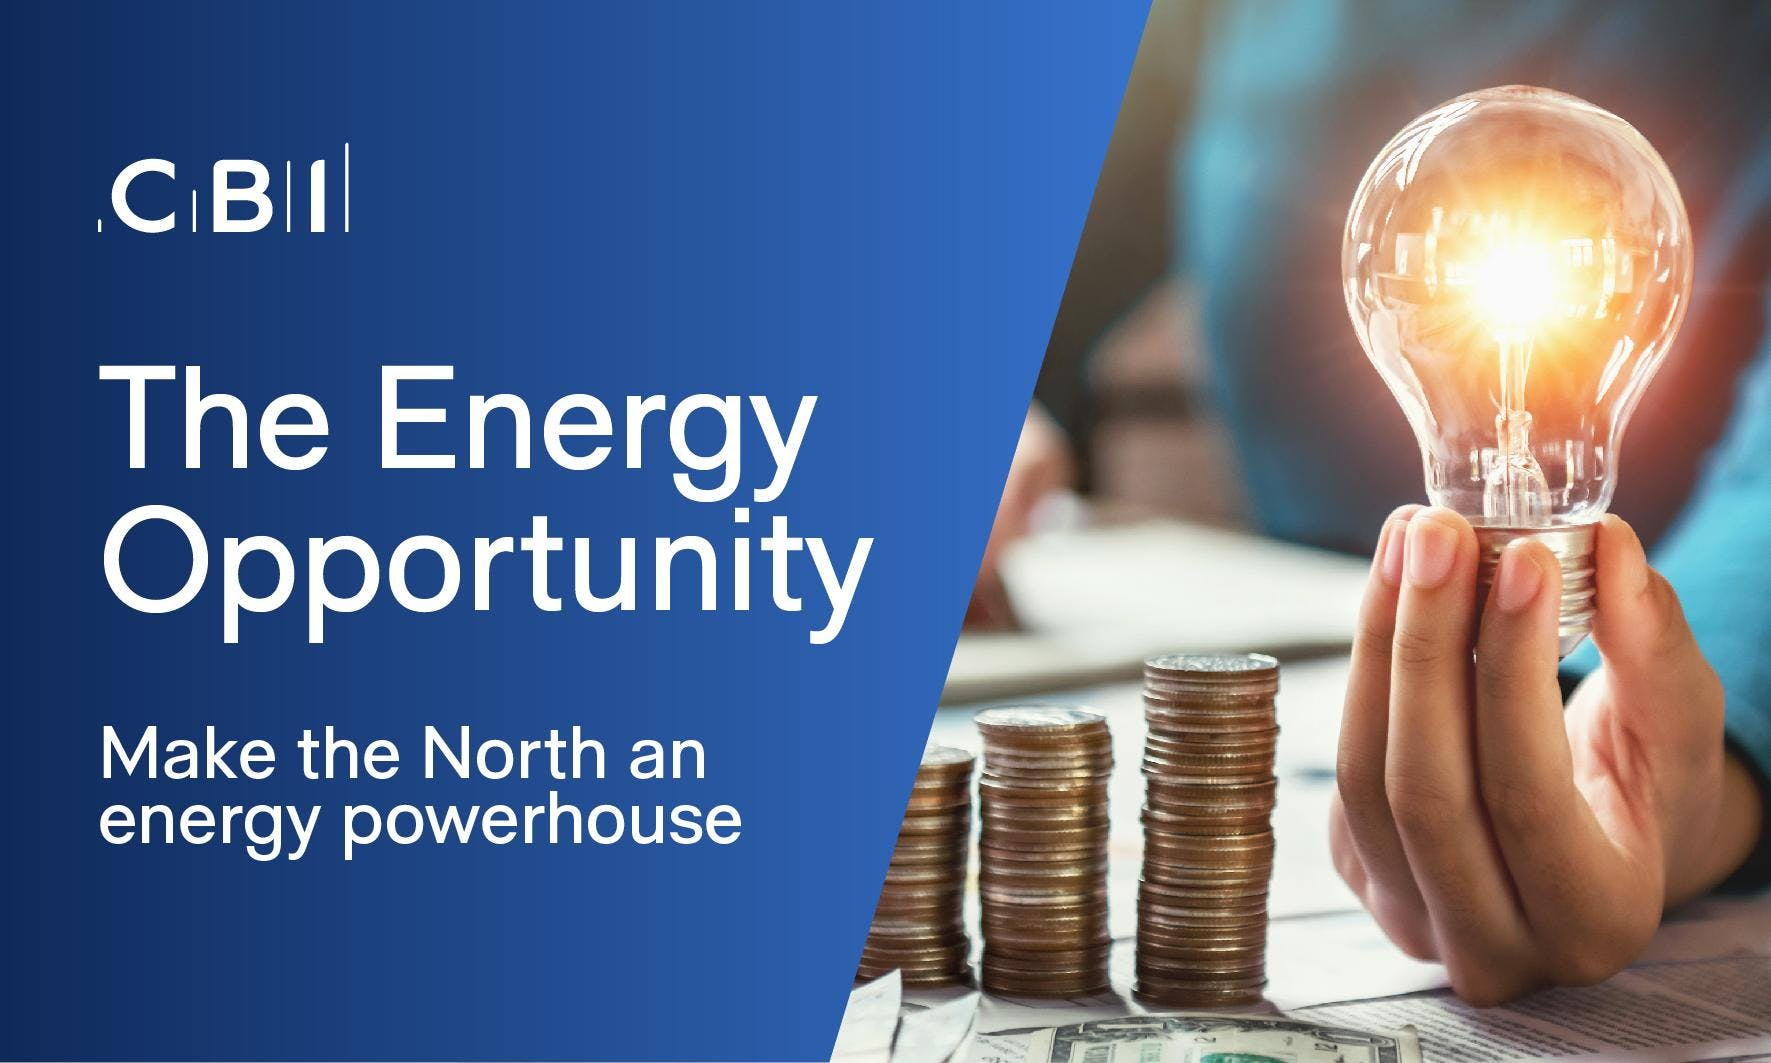 The Energy Opportunity